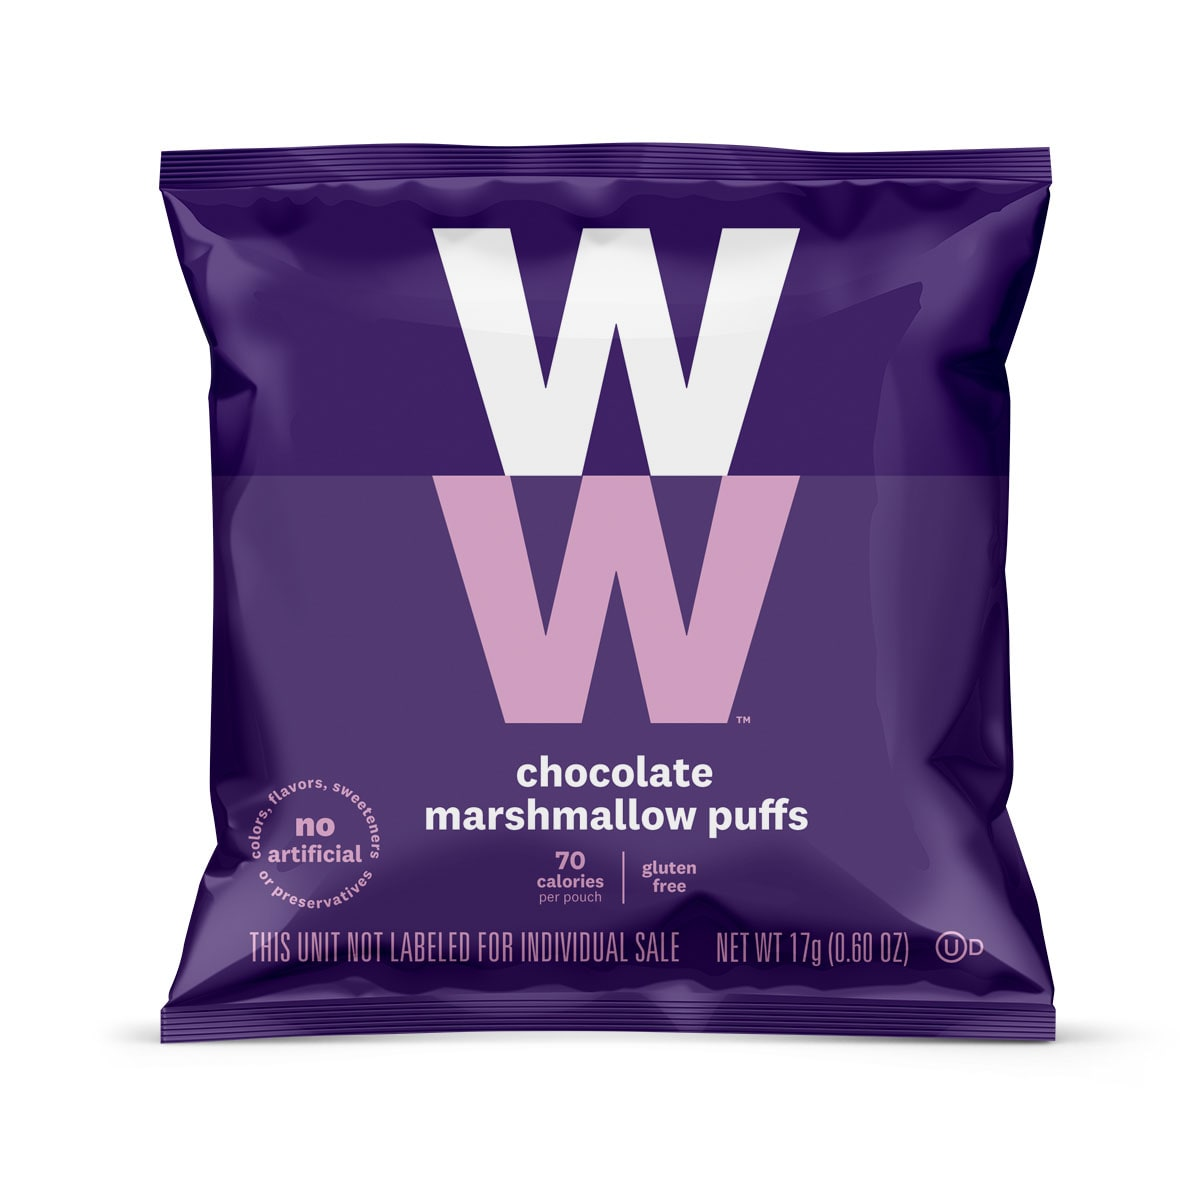 Chocolate Marshmallow Puffs - pouch